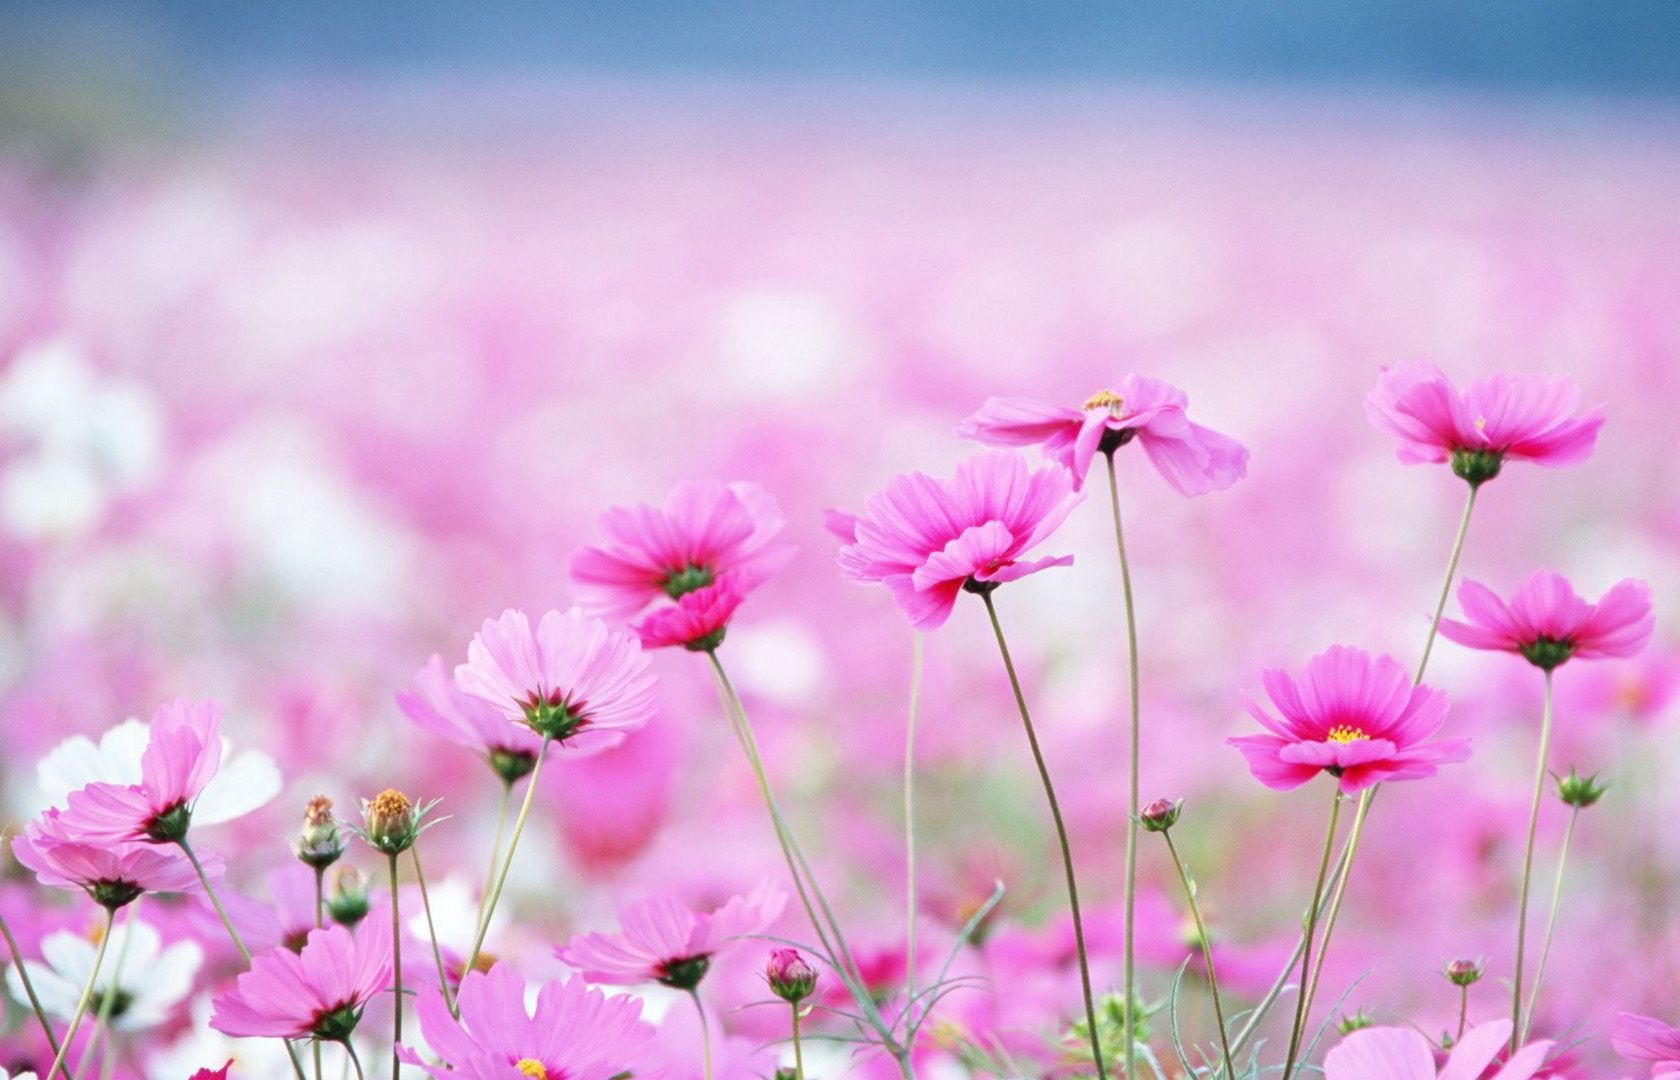 40 Beautiful Flower Wallpapers Free To Download Flowers